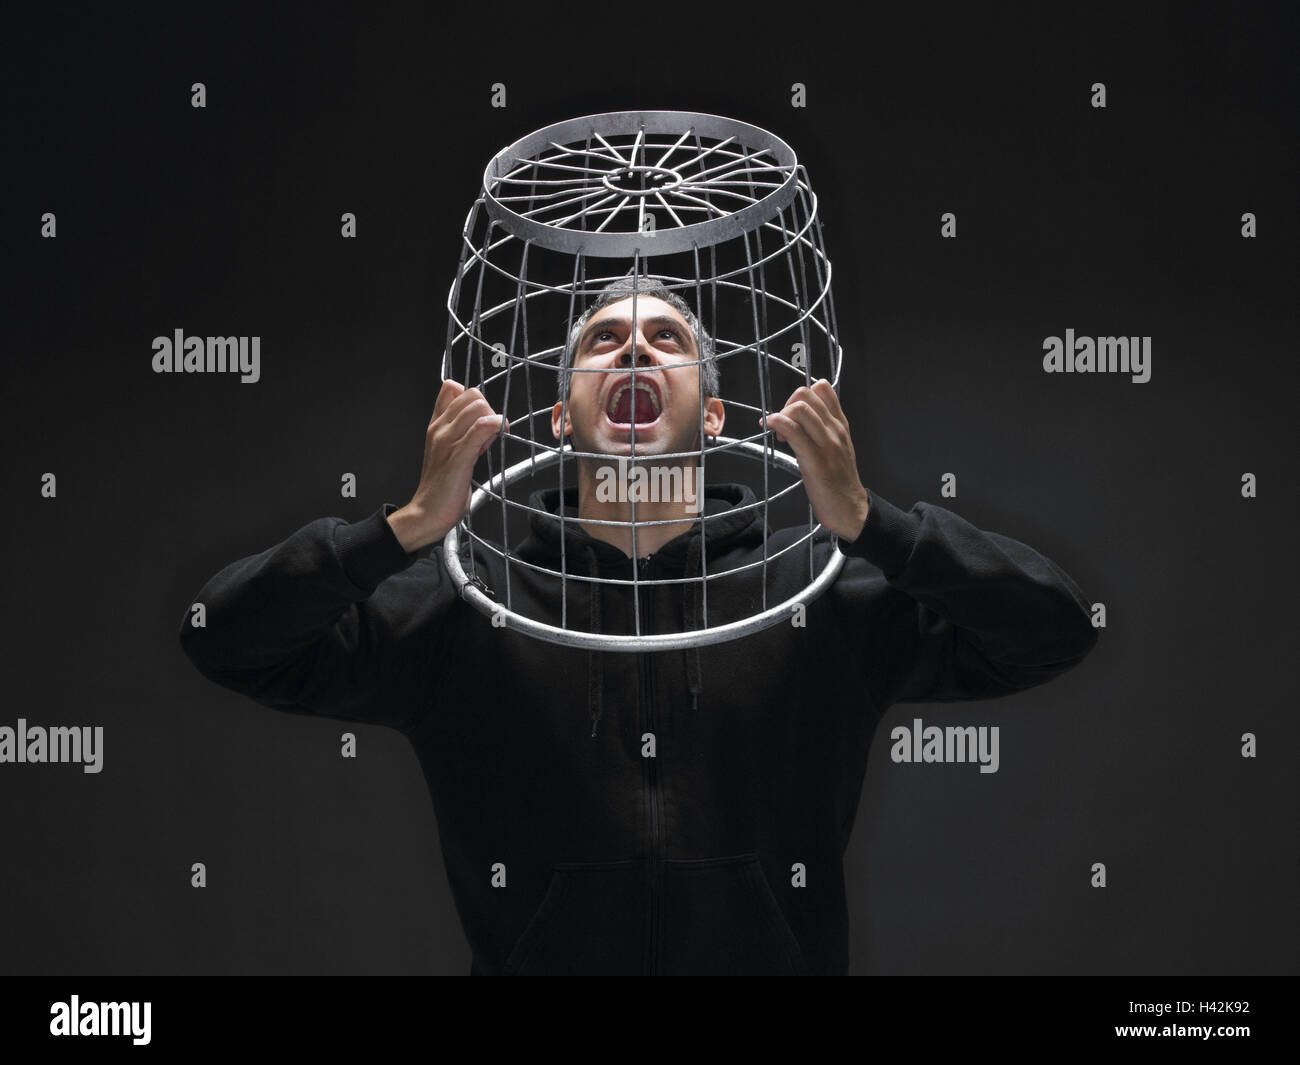 Man, 'card cage', caught, desperation, hopelessness, shout, portrait, grid, basket, head, thought, not free, - Stock Image